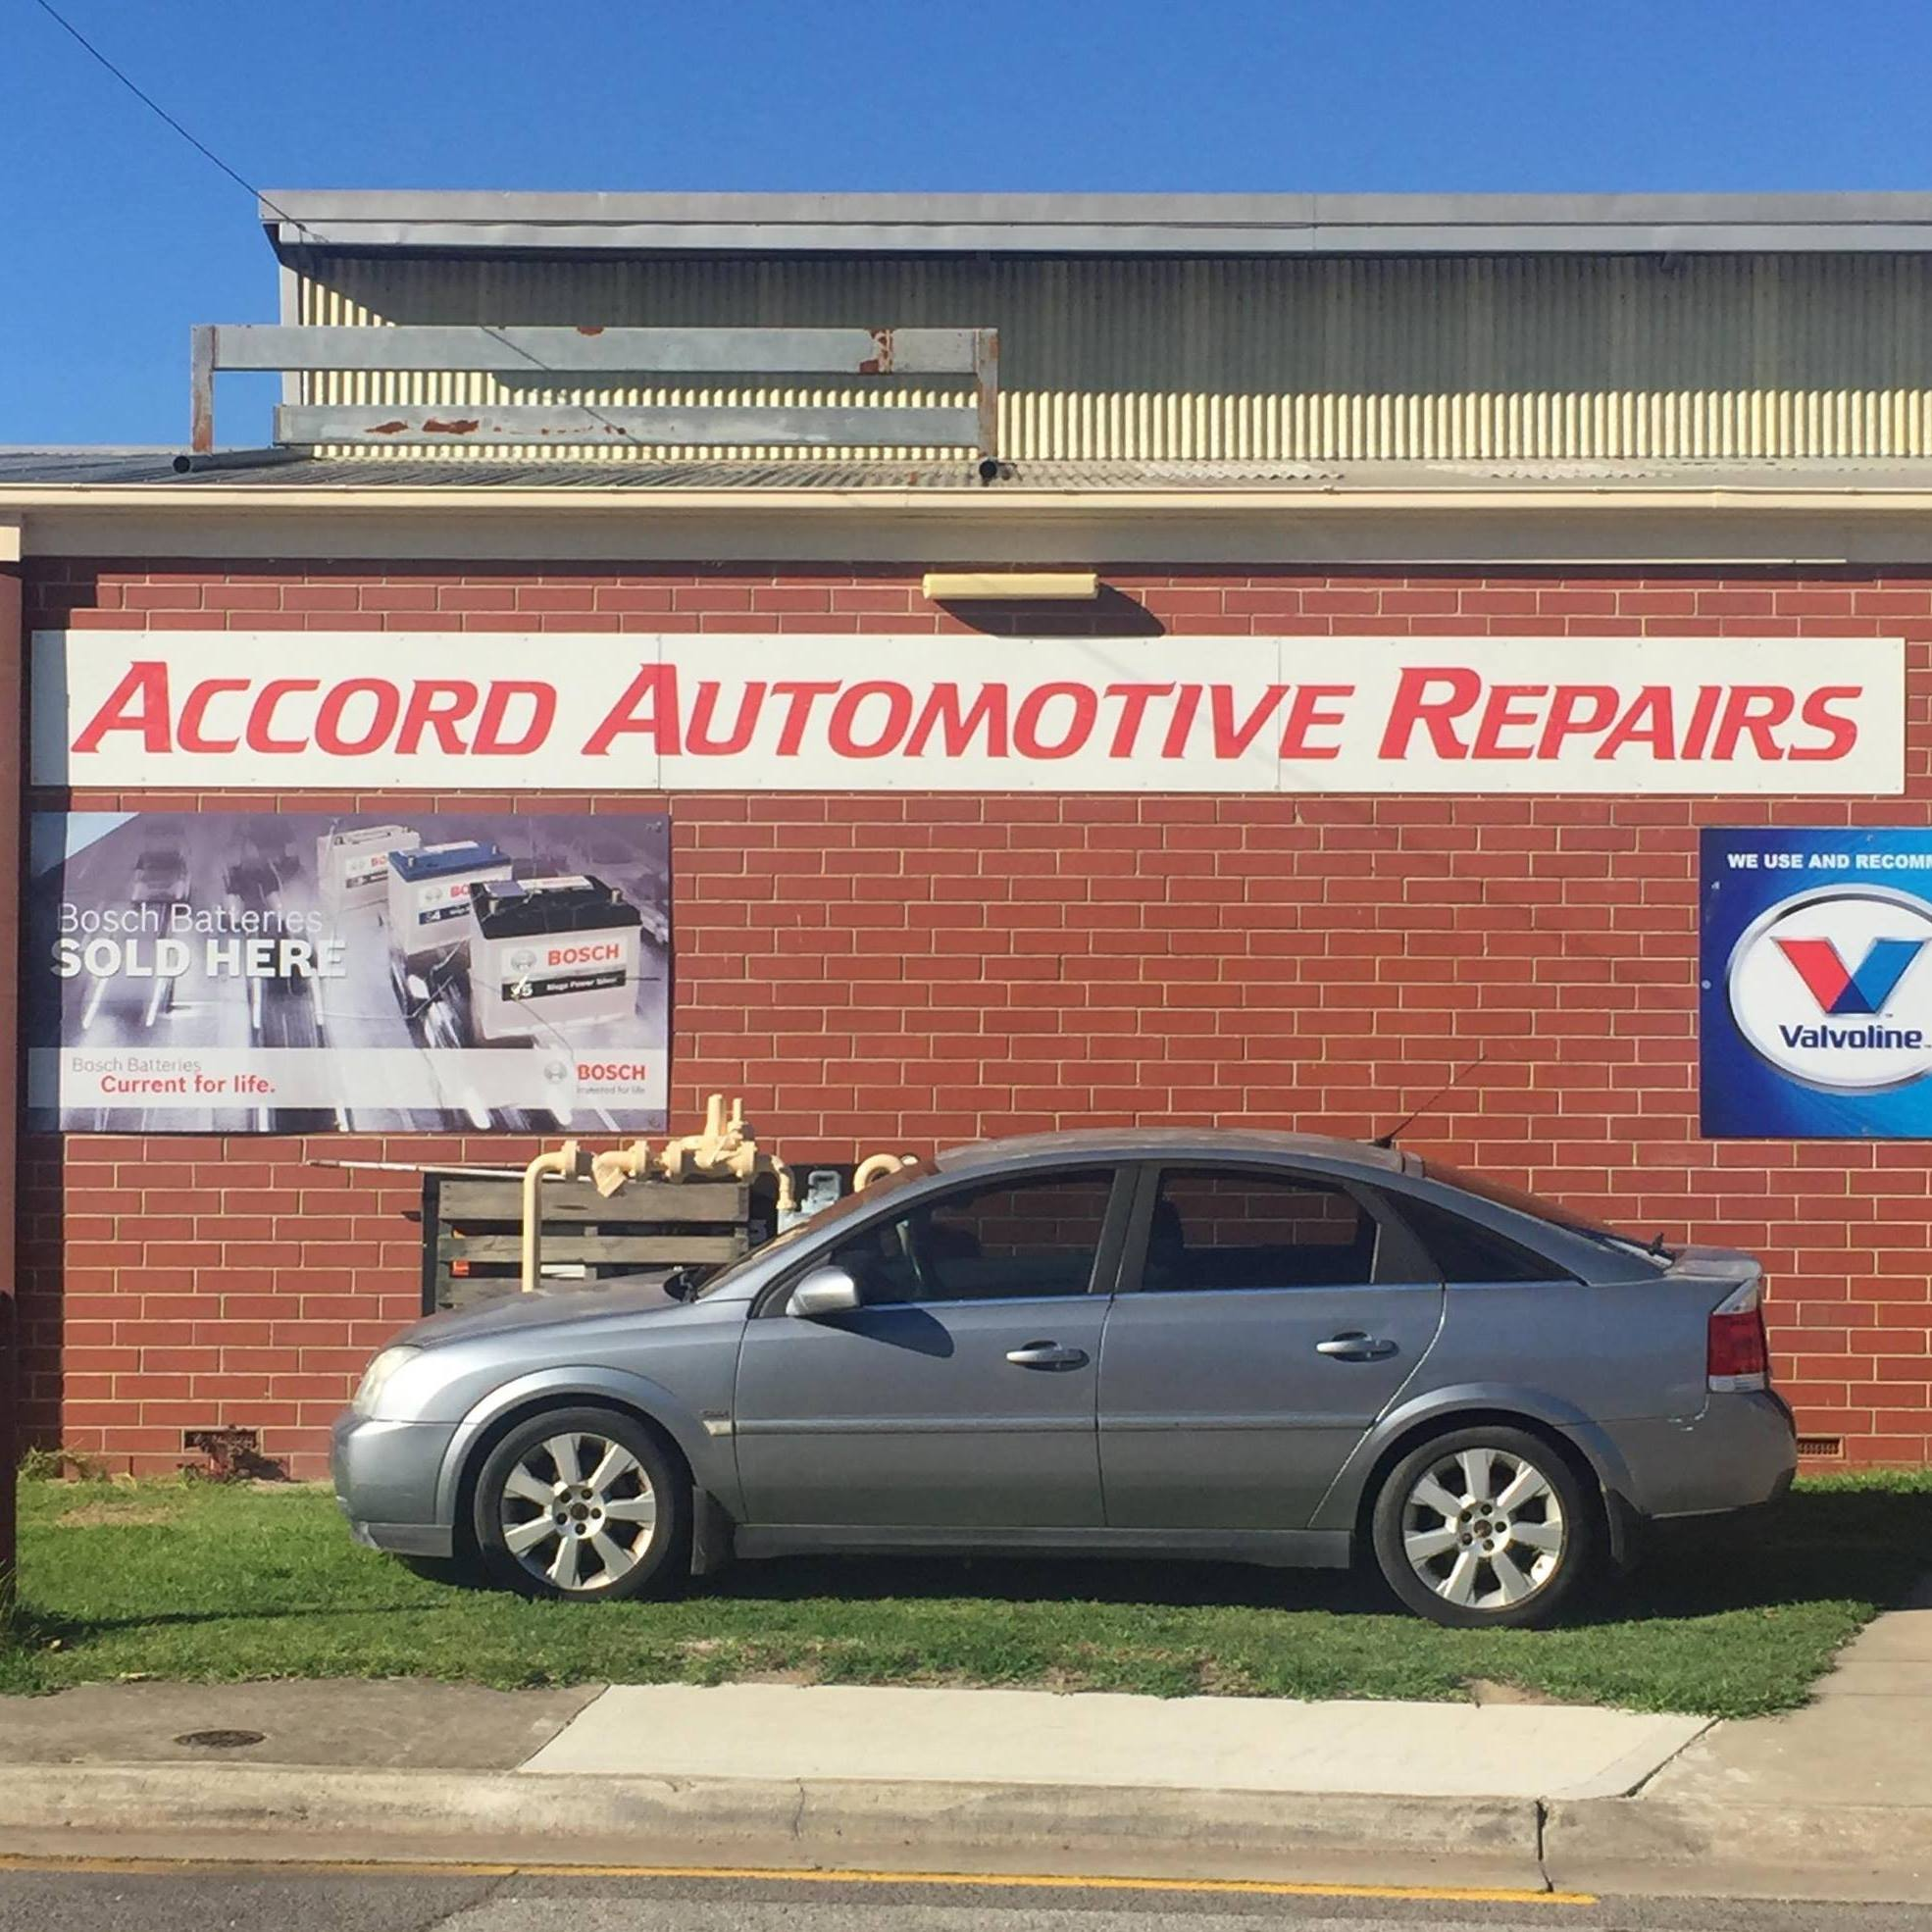 Accord Automotive Repairs